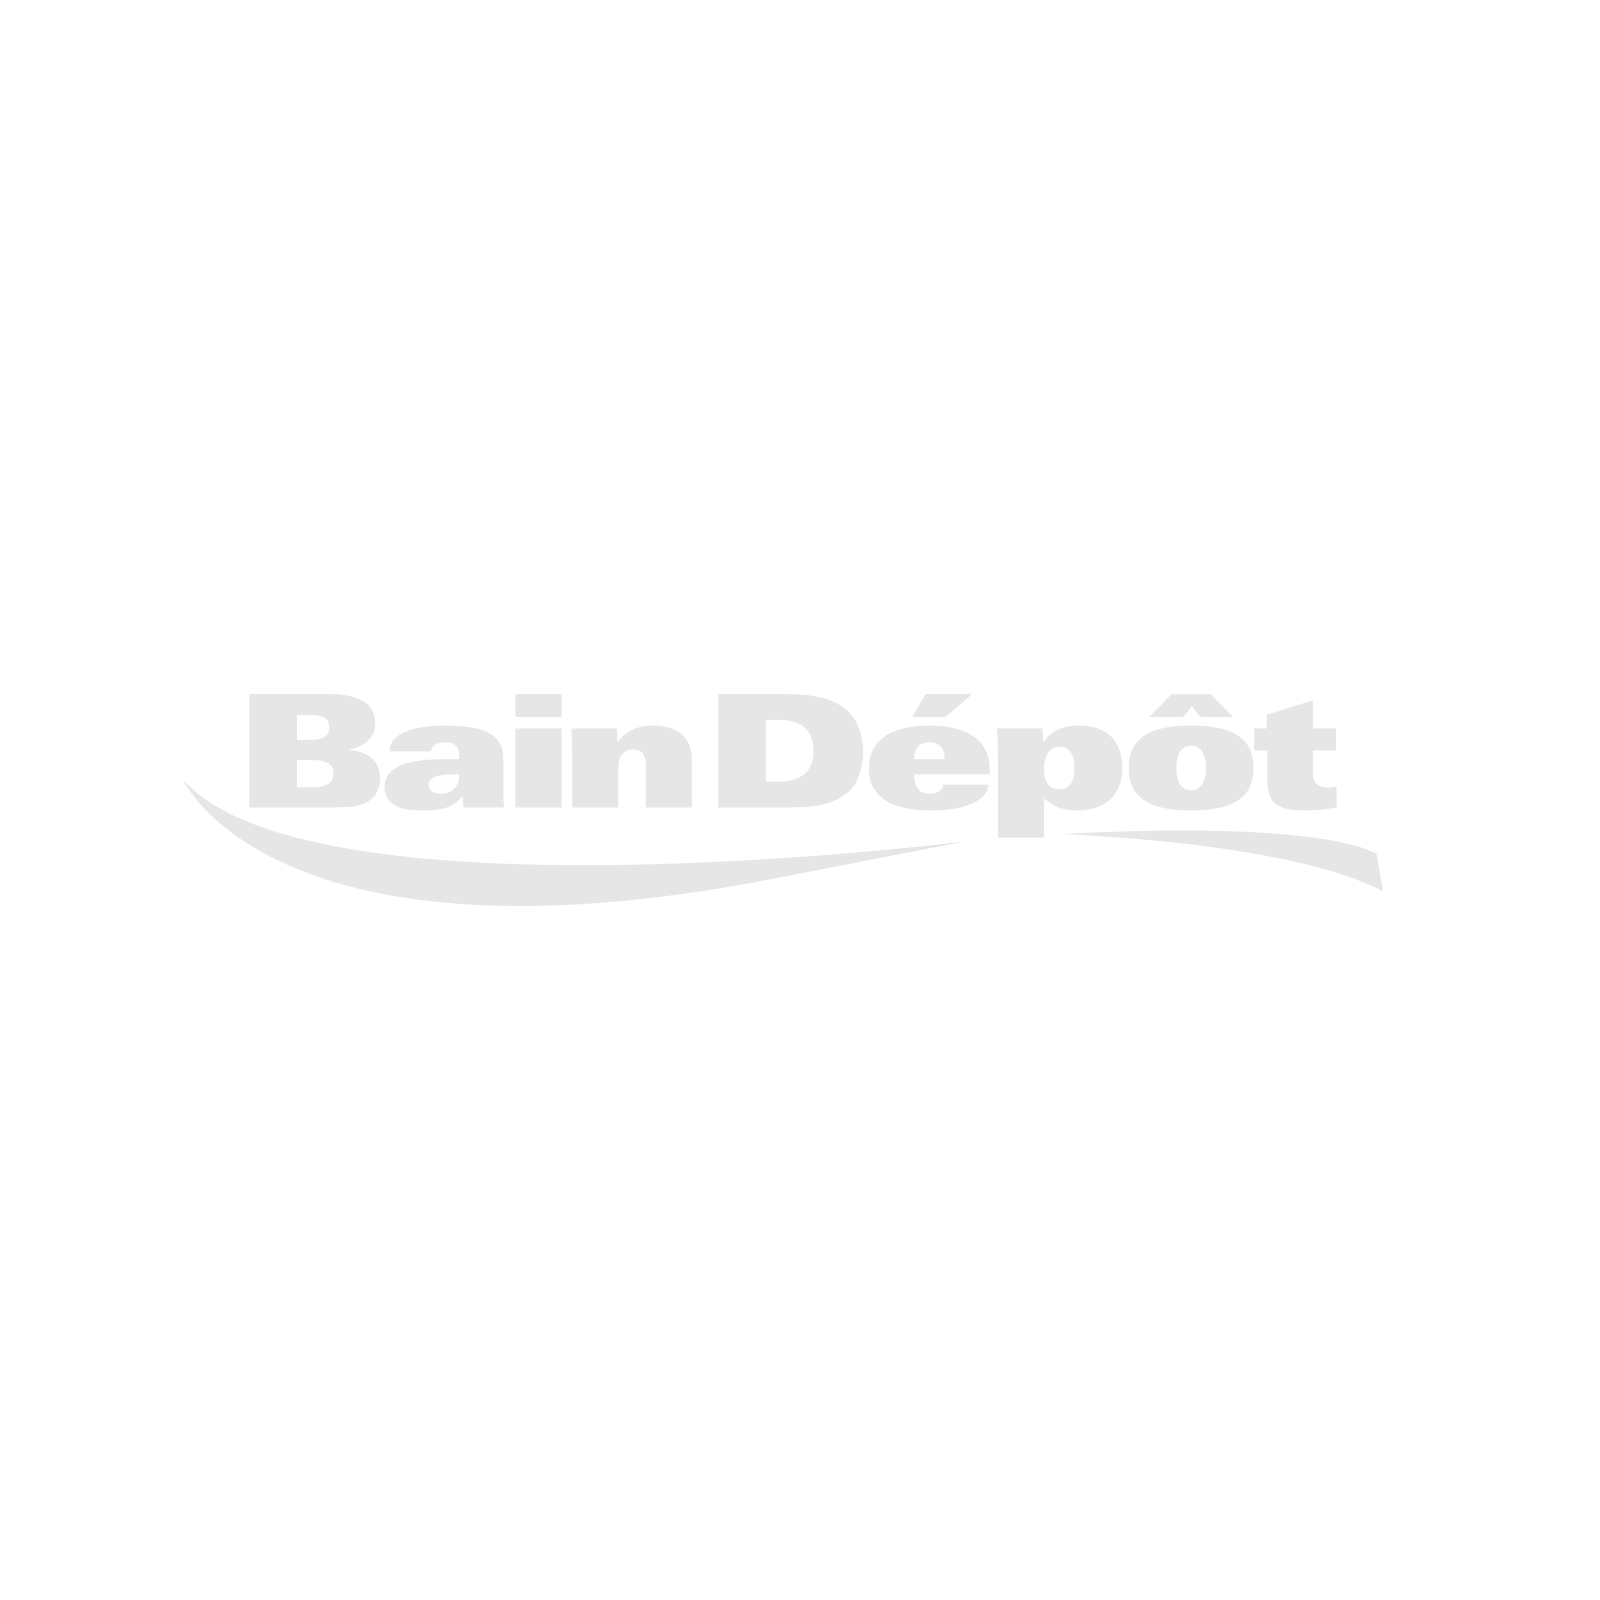 Utlimate extendable chrome bathtub caddy